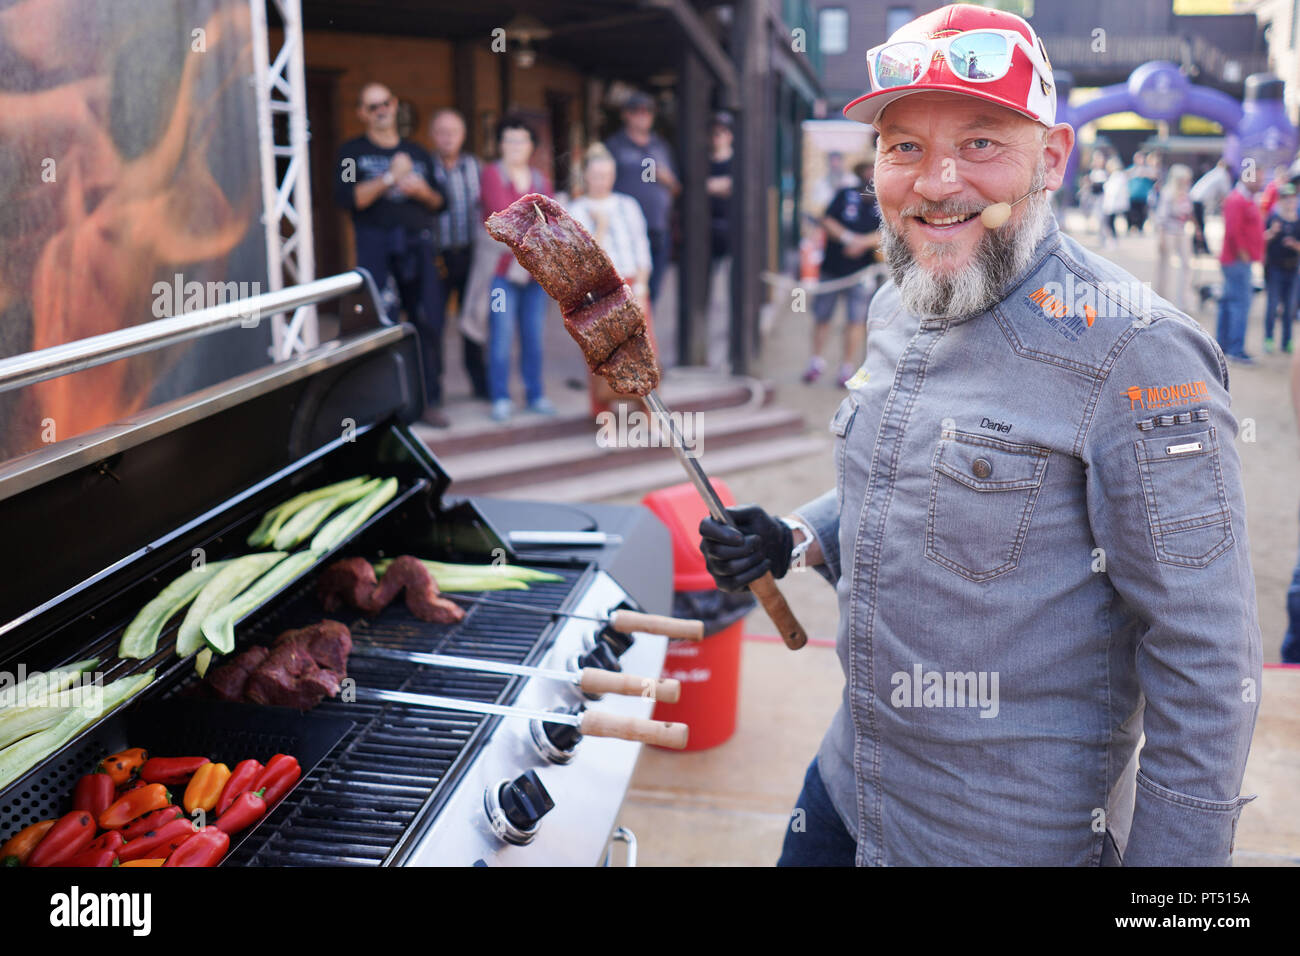 Templin, Brandenburg. 06th Oct, 2018. 06 October 2018, Germany, Templin: The German grill master Daniel Nonnenmann shows off his grill talent at the first 'Brandenburg Barbecue Championship' outside of the competition in the 'El Dorado Templin'. A total of eight teams grill for the grill crown. Credit: Jörg Carstensen/dpa/Alamy Live News - Stock Image